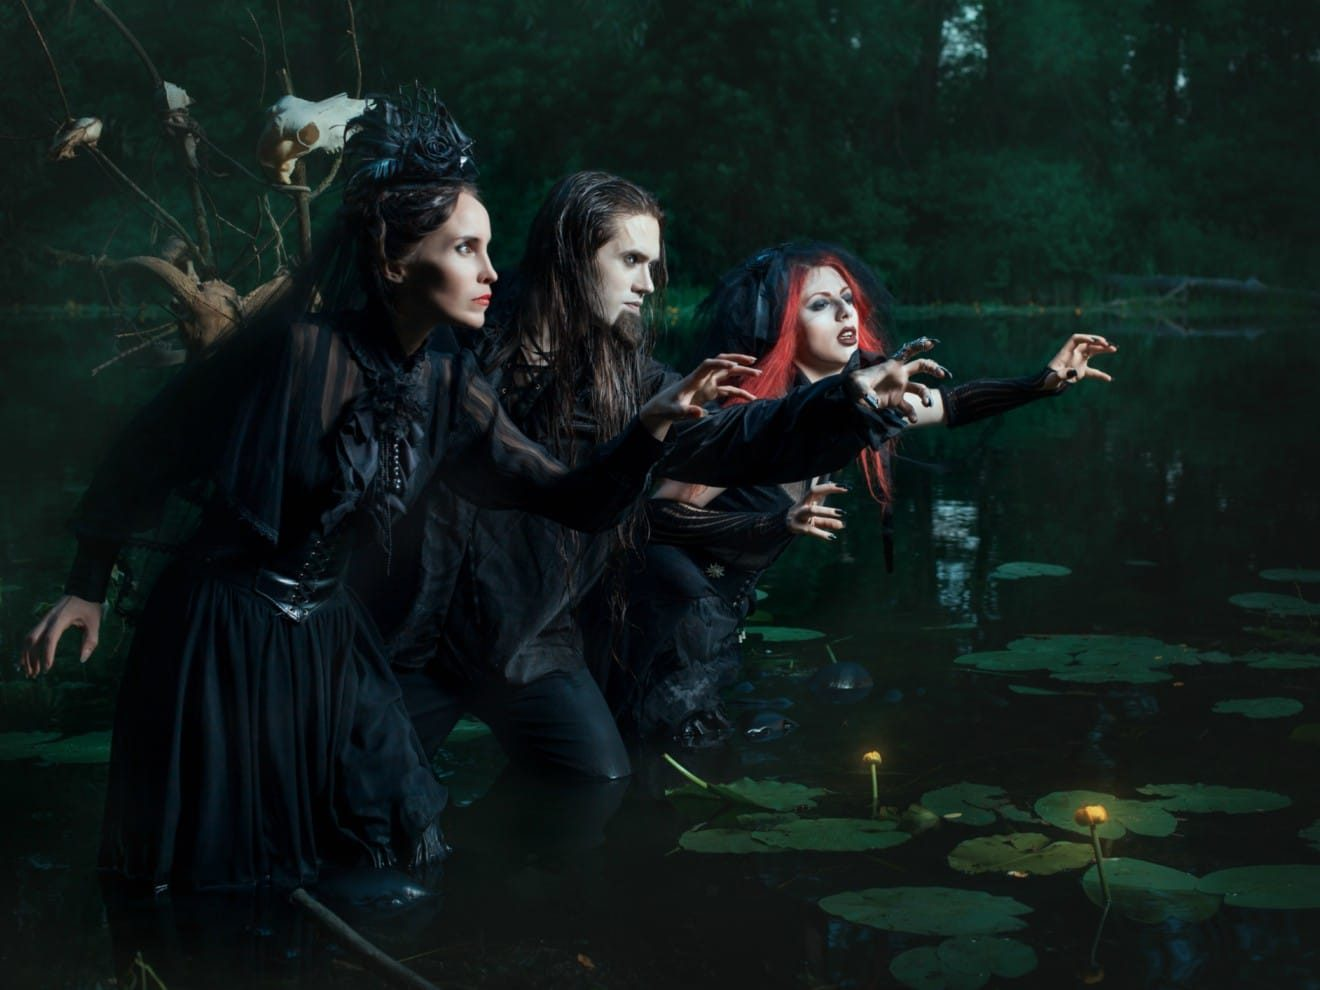 Heavy Metal Lyricism and The Purest Gothic Behind